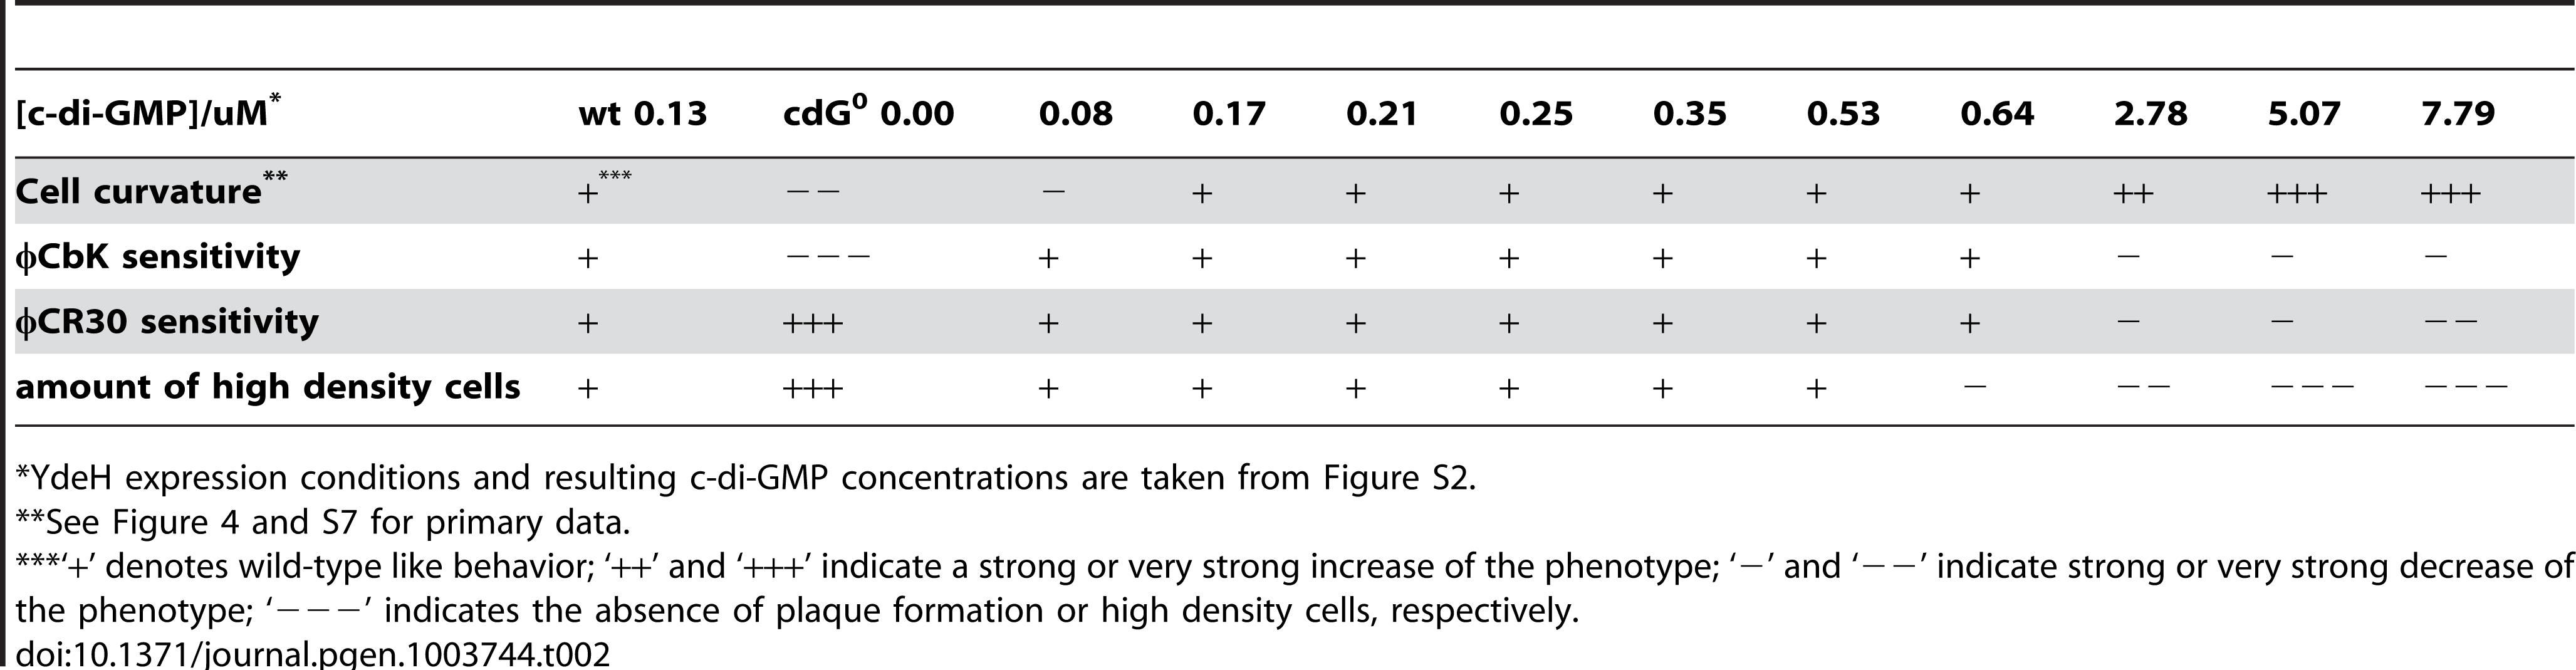 Assessment of cell curvature, phage sensitivity (φCbK and φCR30), and density switch with increasing c-di-GMP levels.